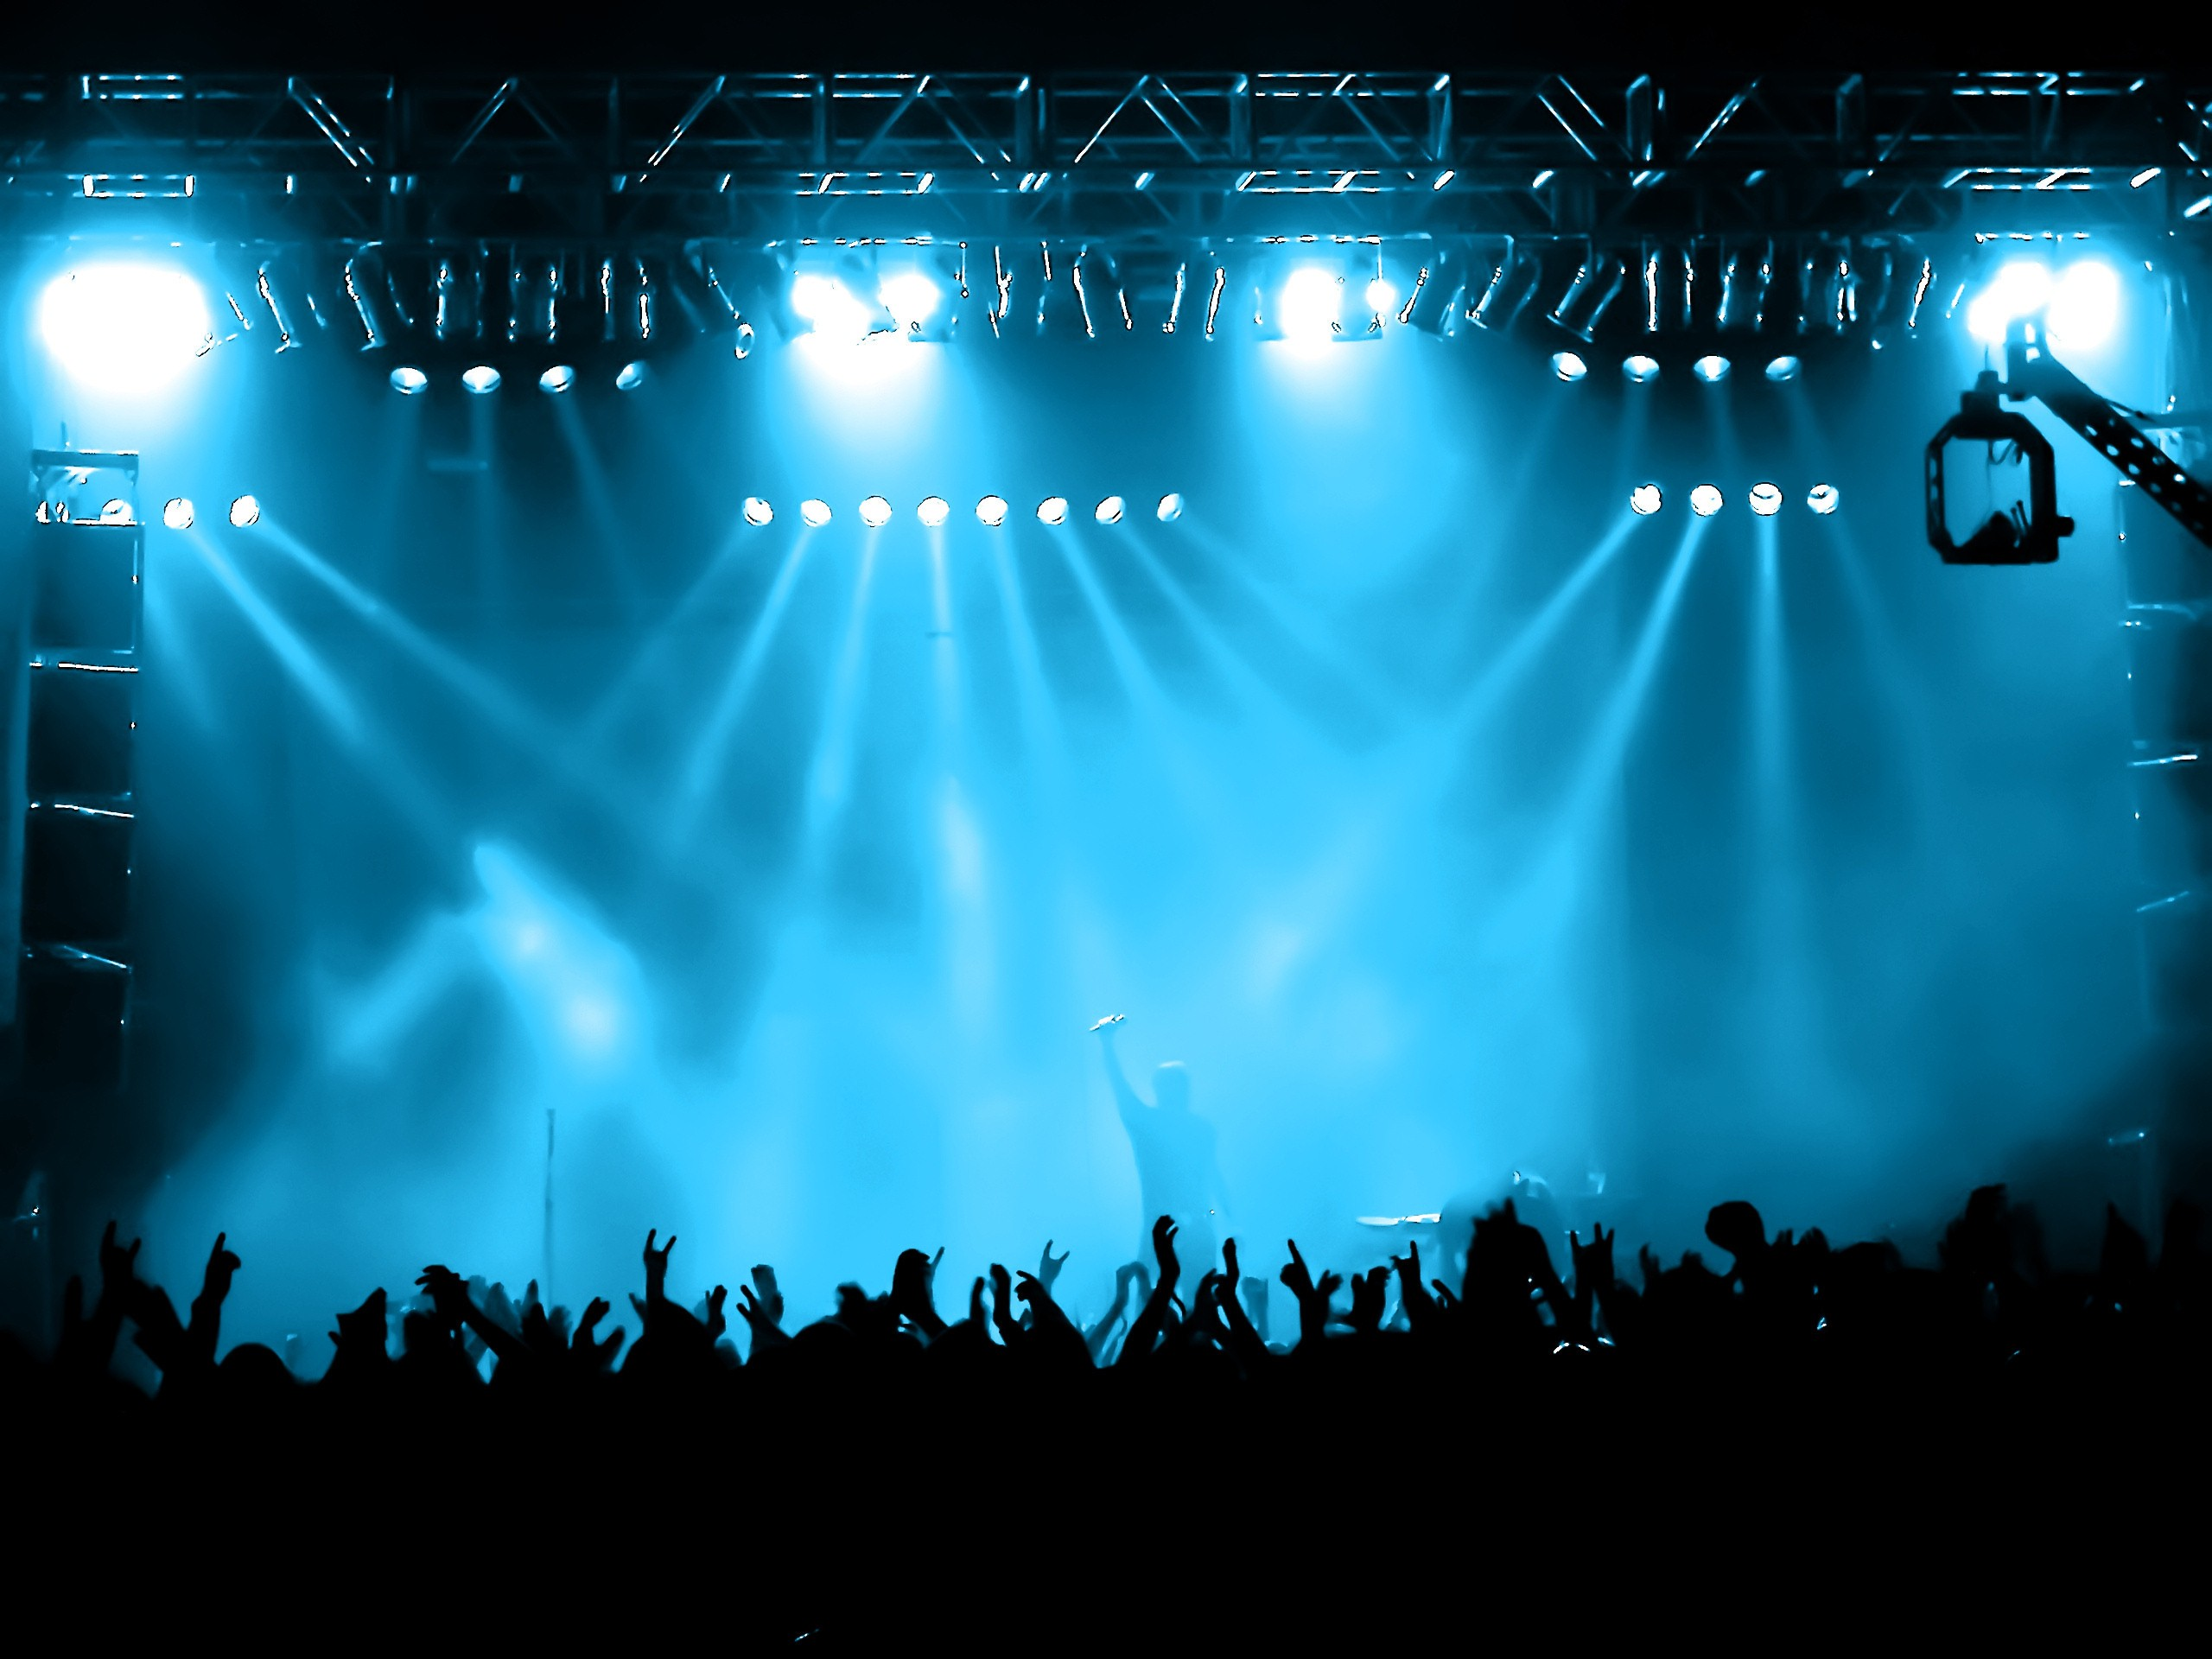 Concert Background 1 Download Free Cool Full Hd